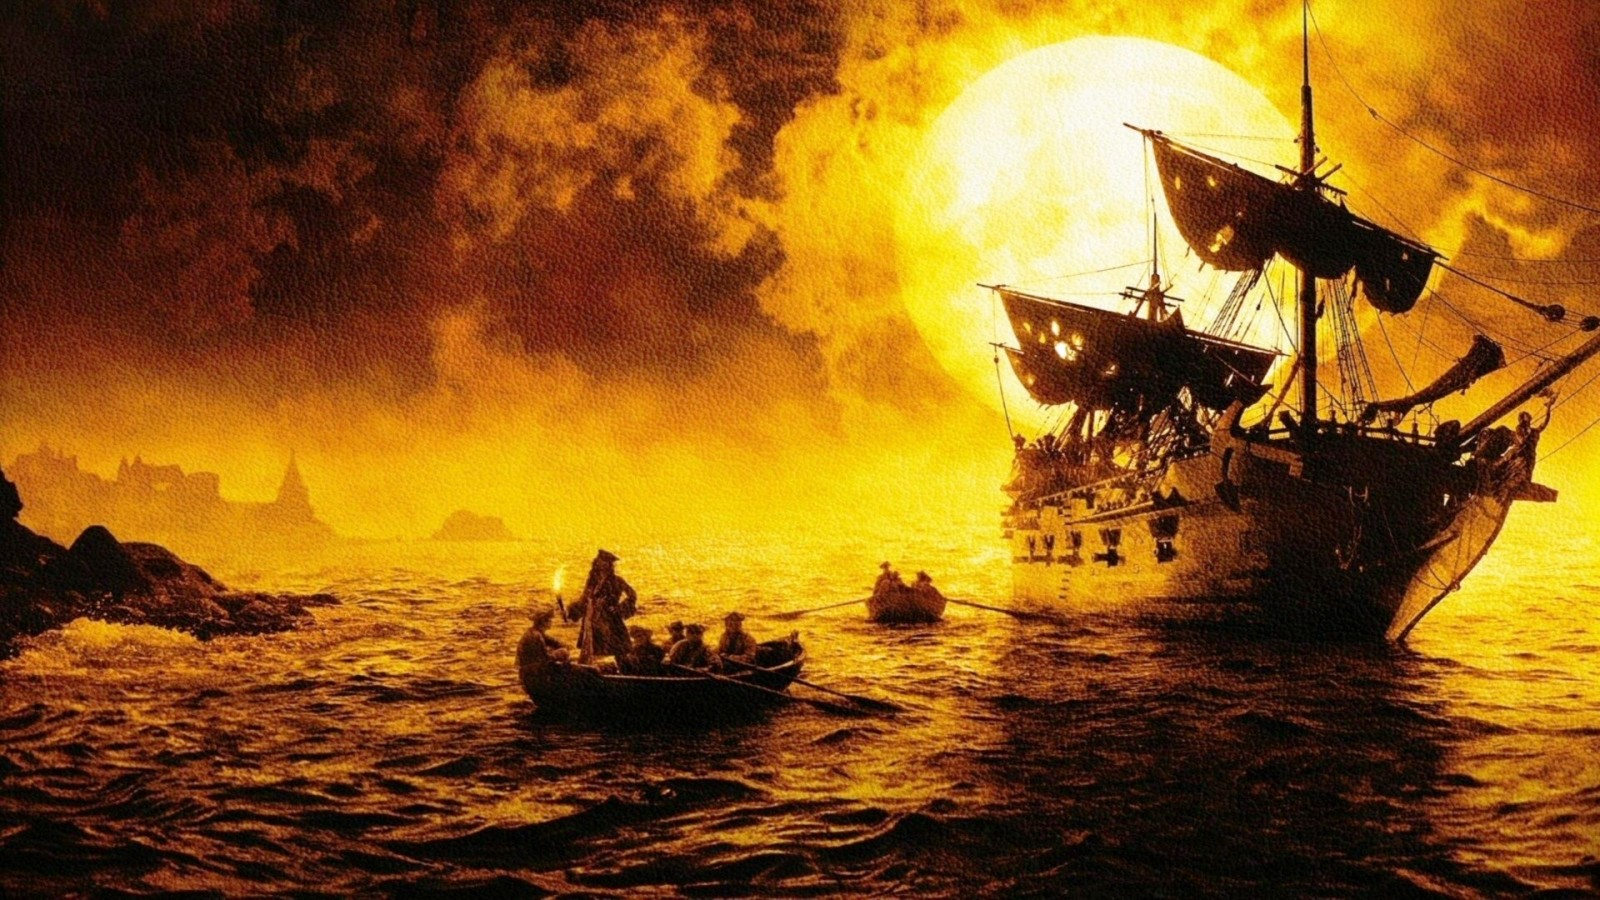 Pirate-Ship-Sun-HD.jpg